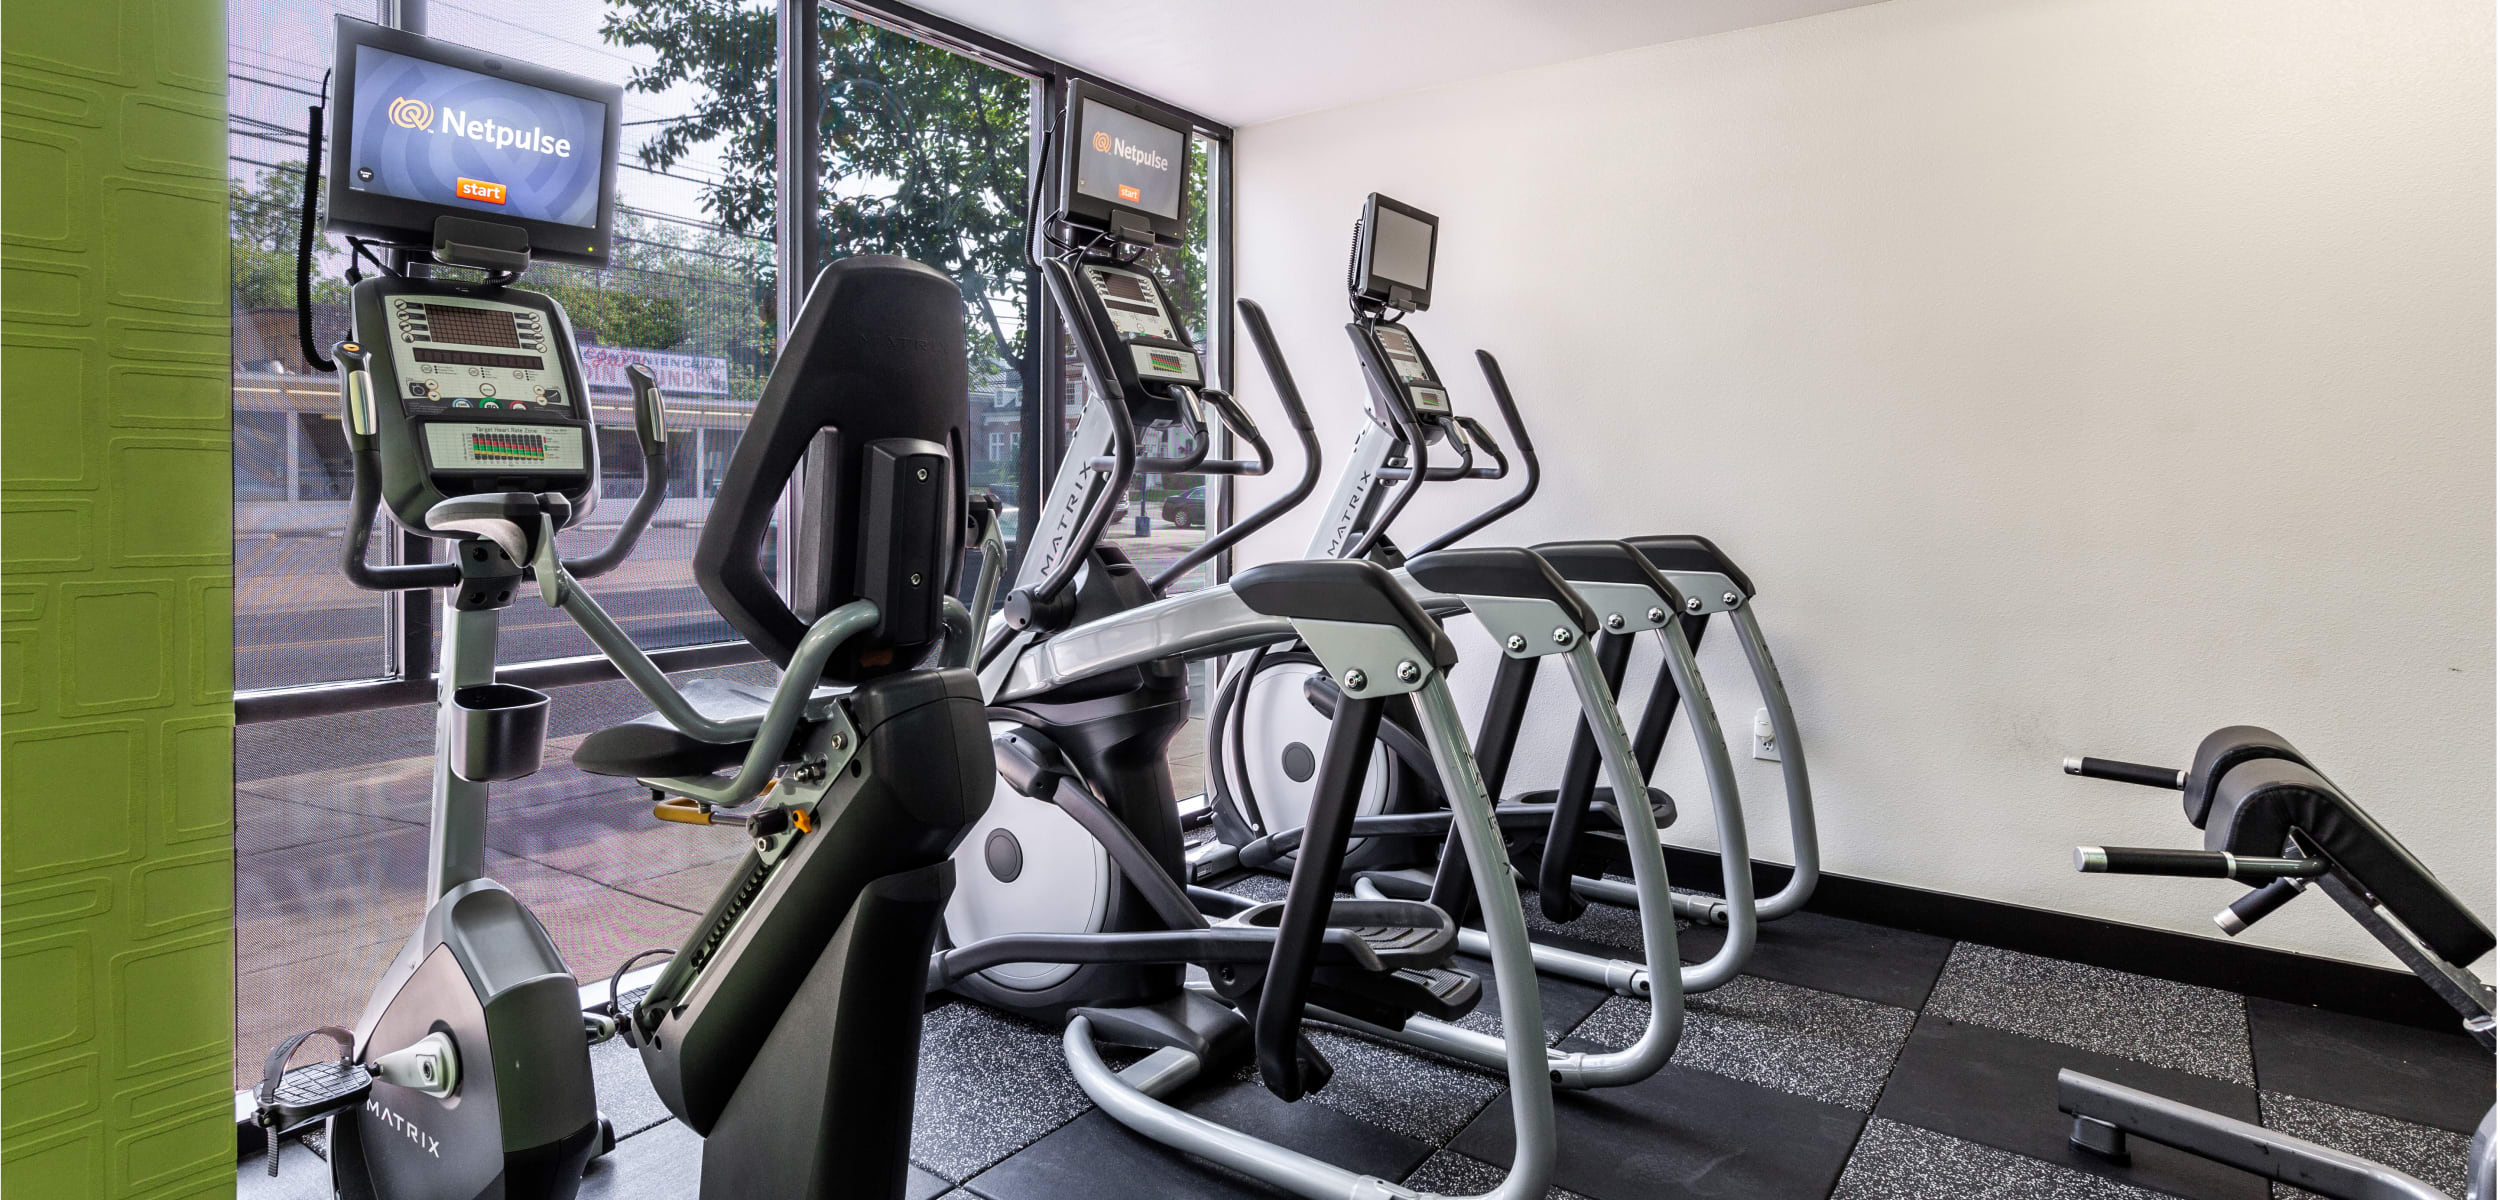 Regents West at 24th's fitness center in Austin, Texas